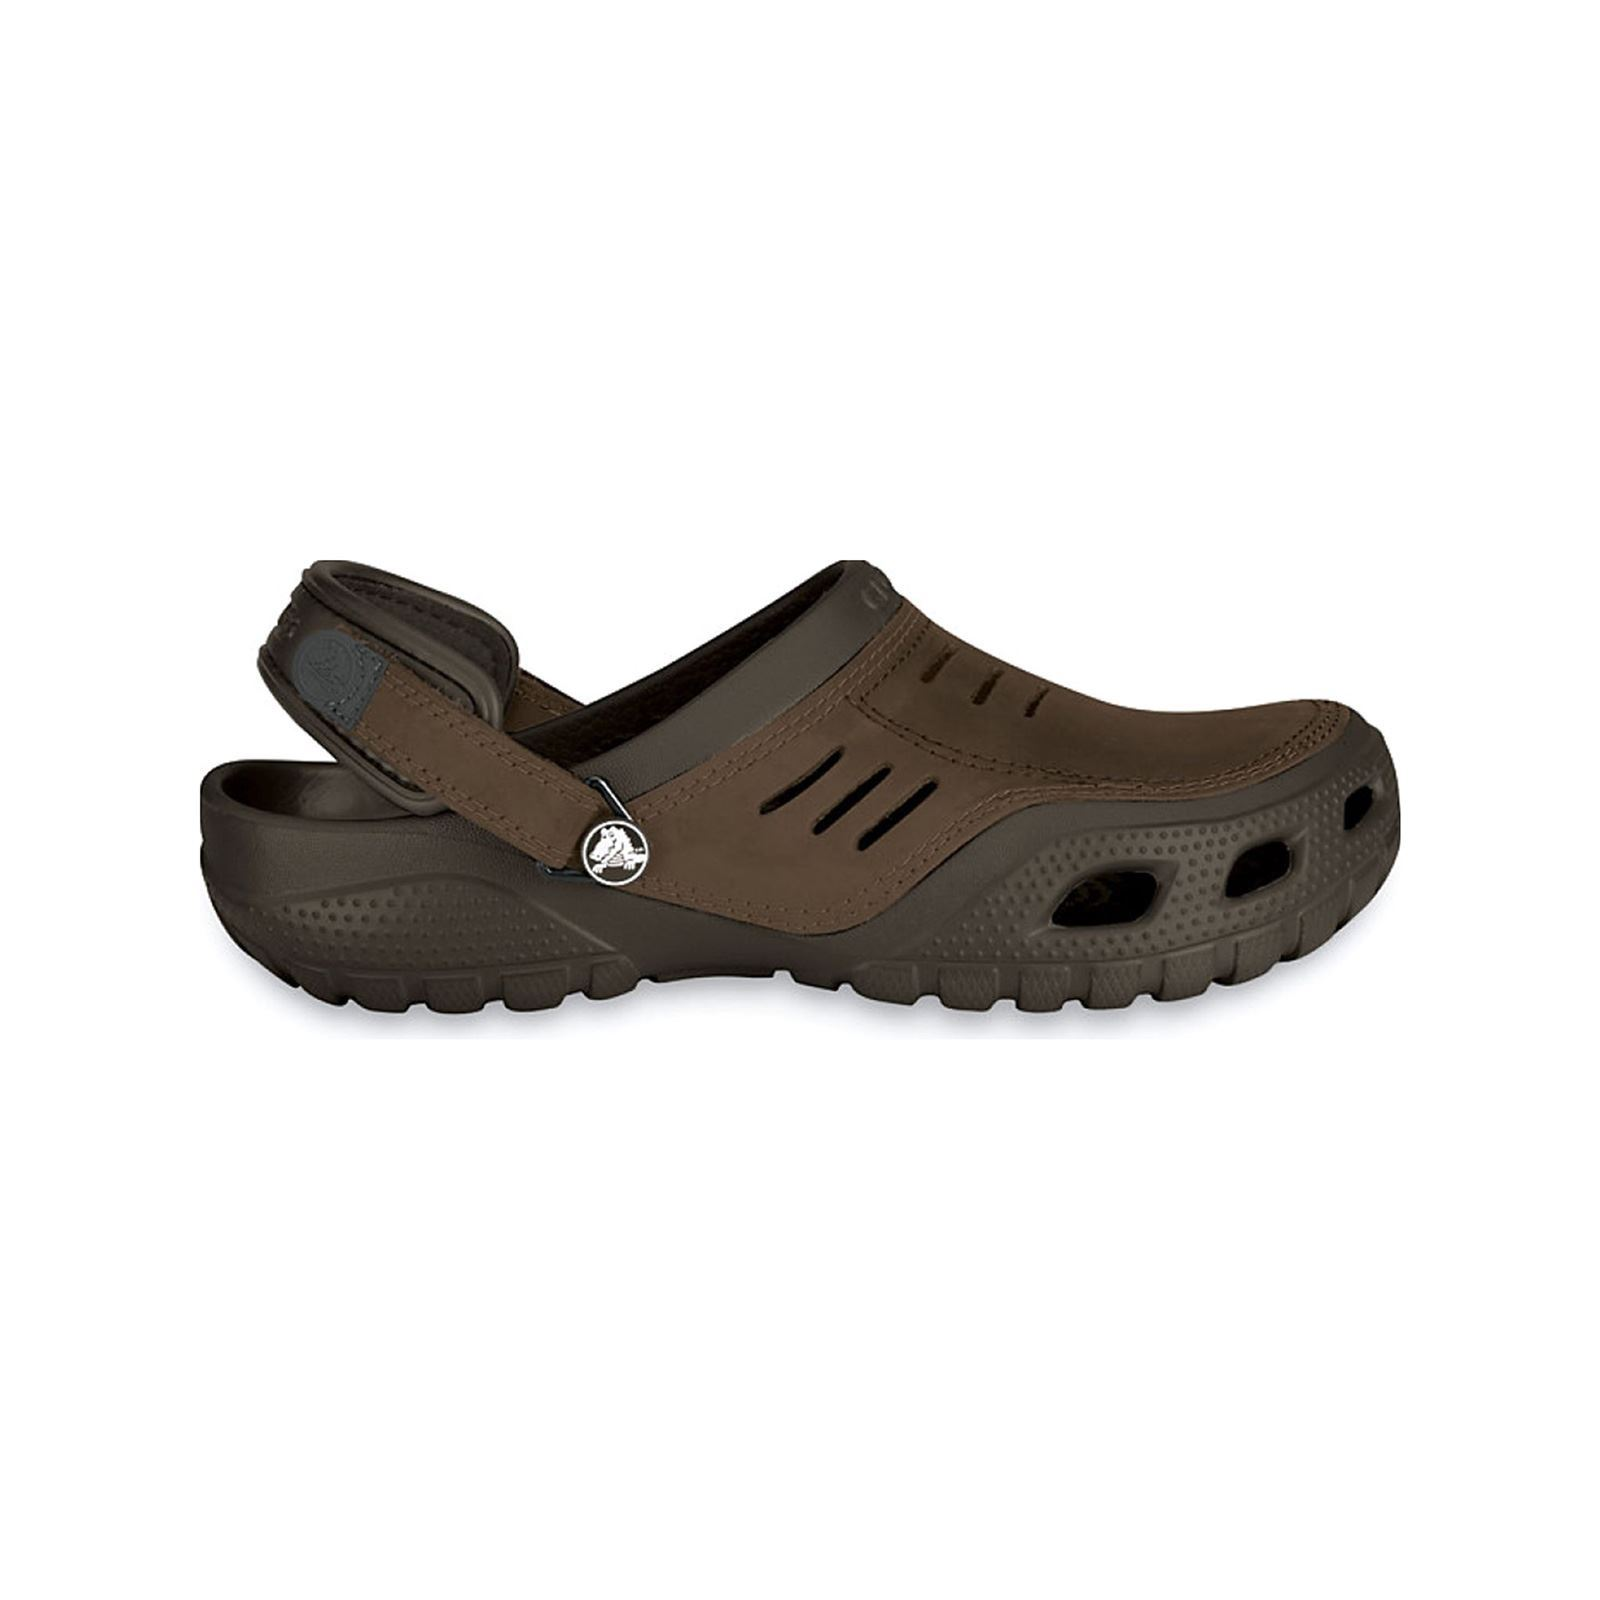 Crocs Yukon Sport - Sandales - marron foncé  Application siglée sur bride